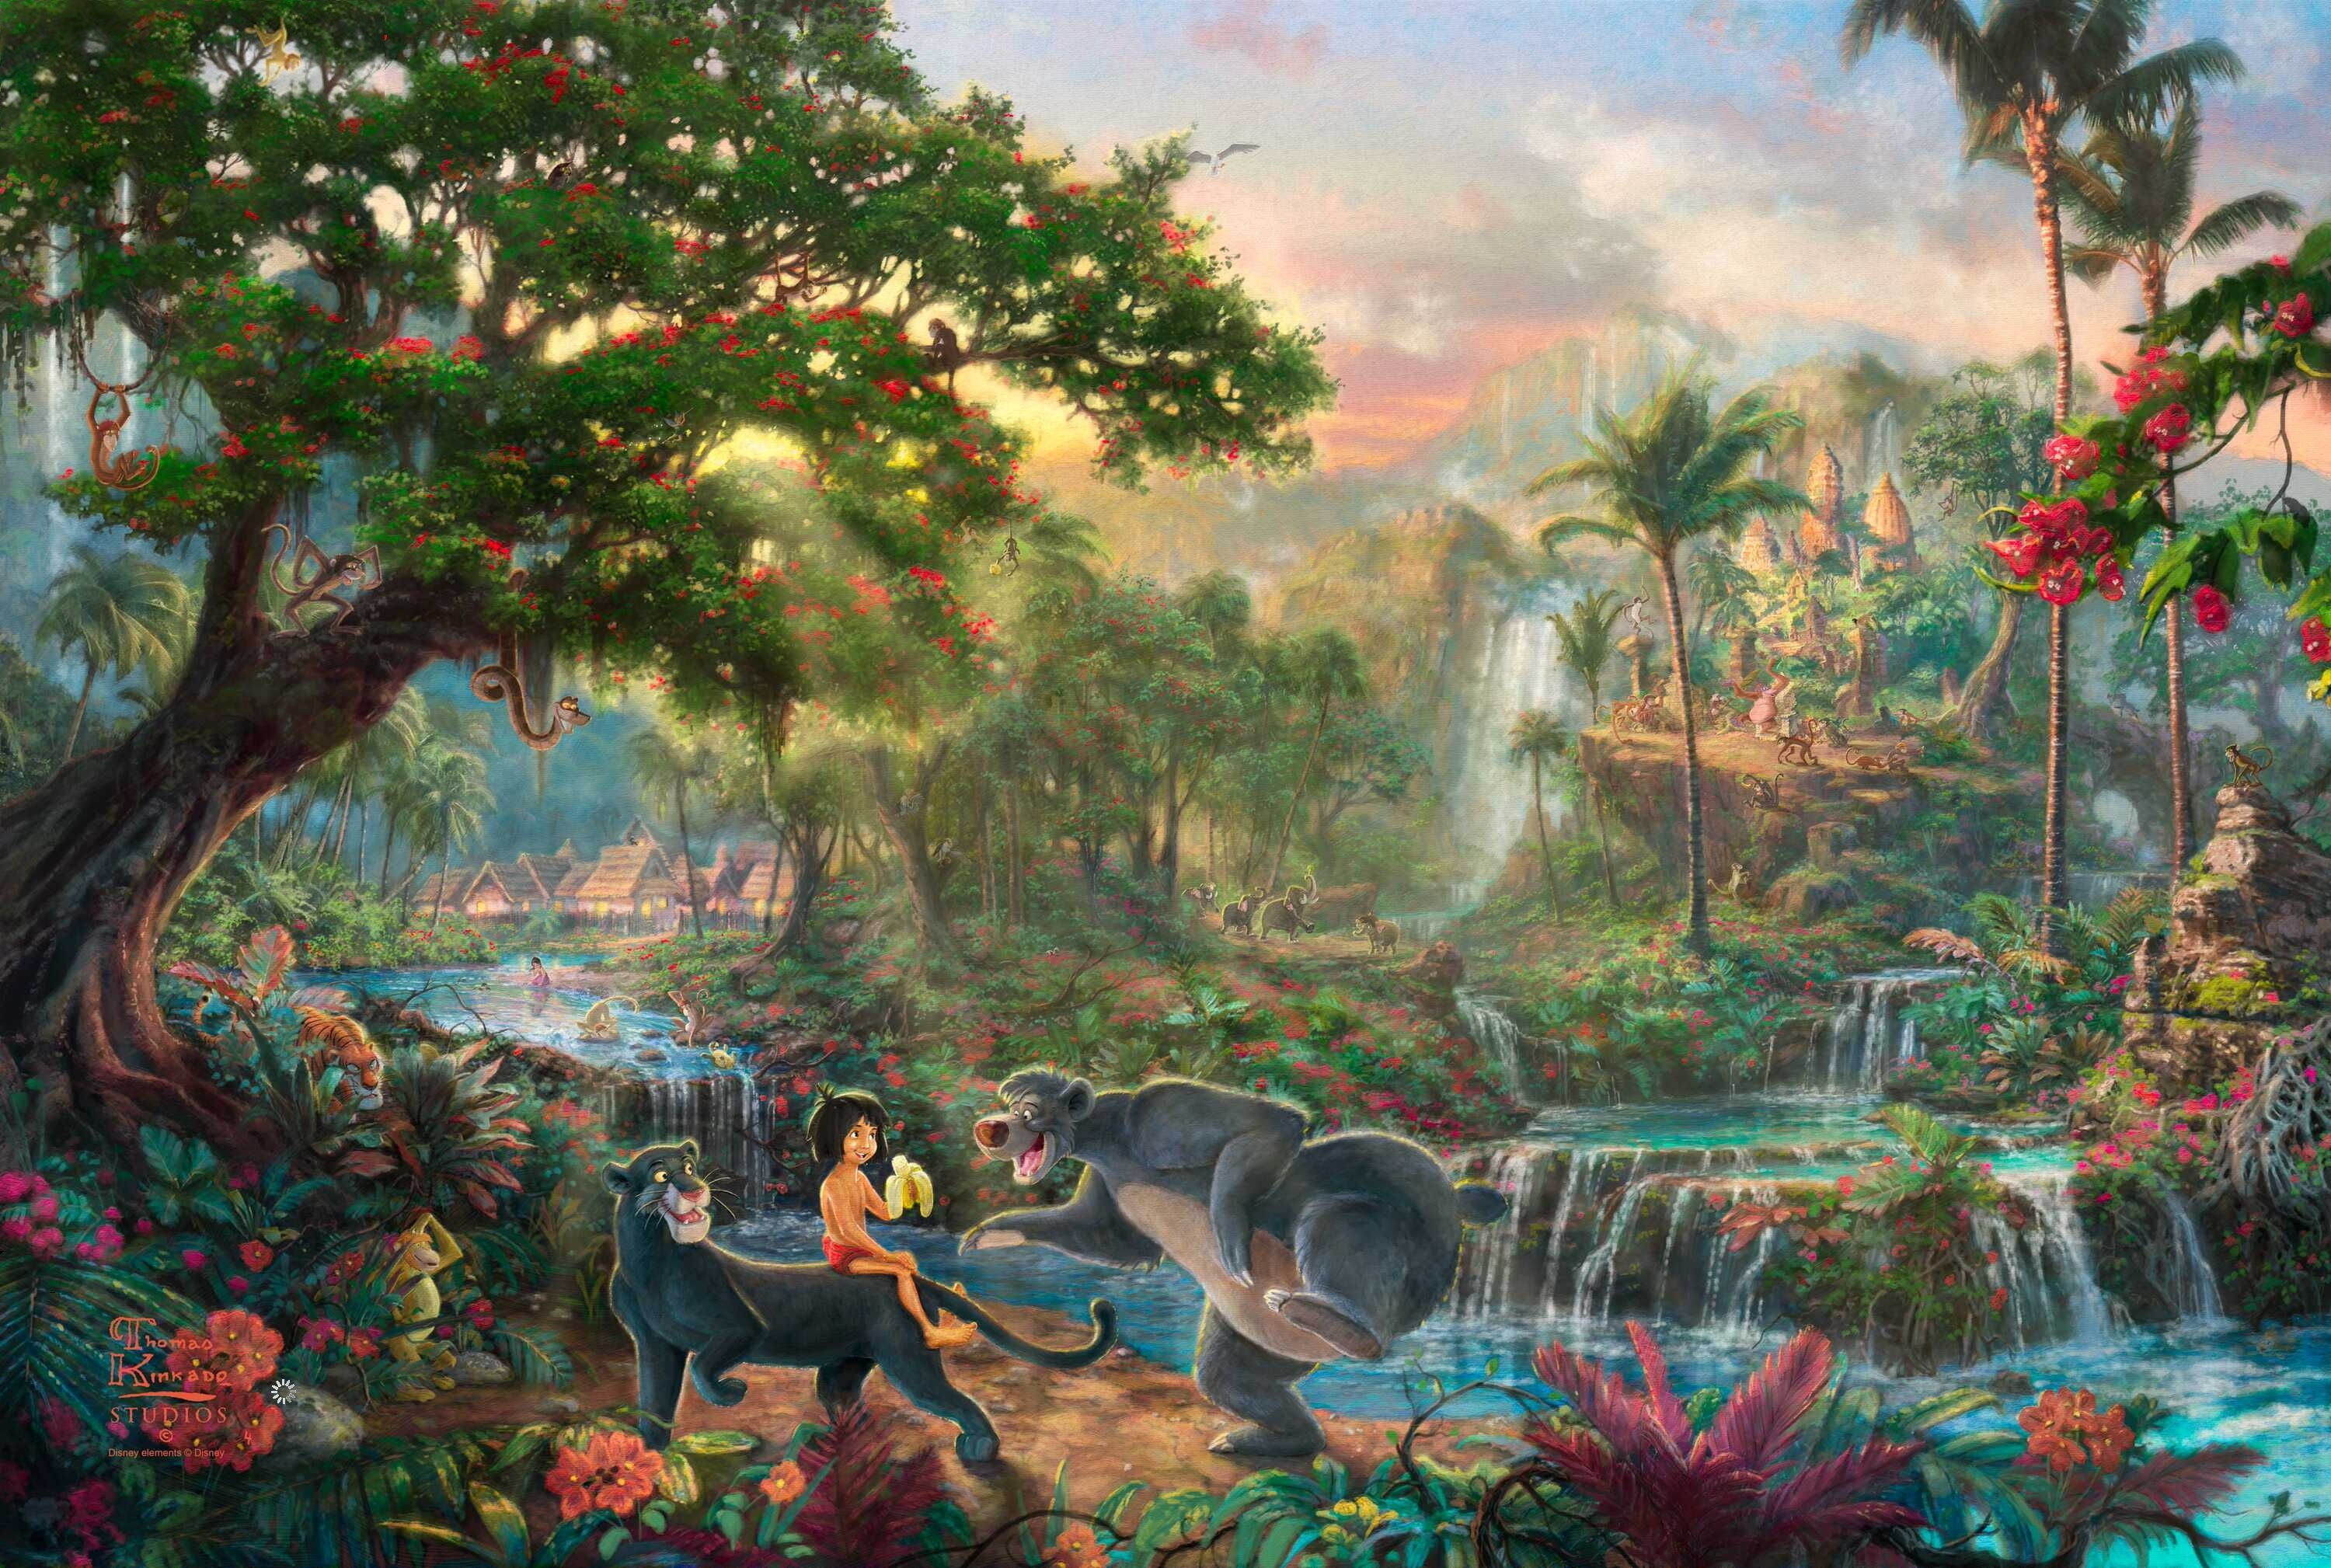 Thomas Kinkade Disney Wallpaper Images Pictures   Becuo 3000x2018